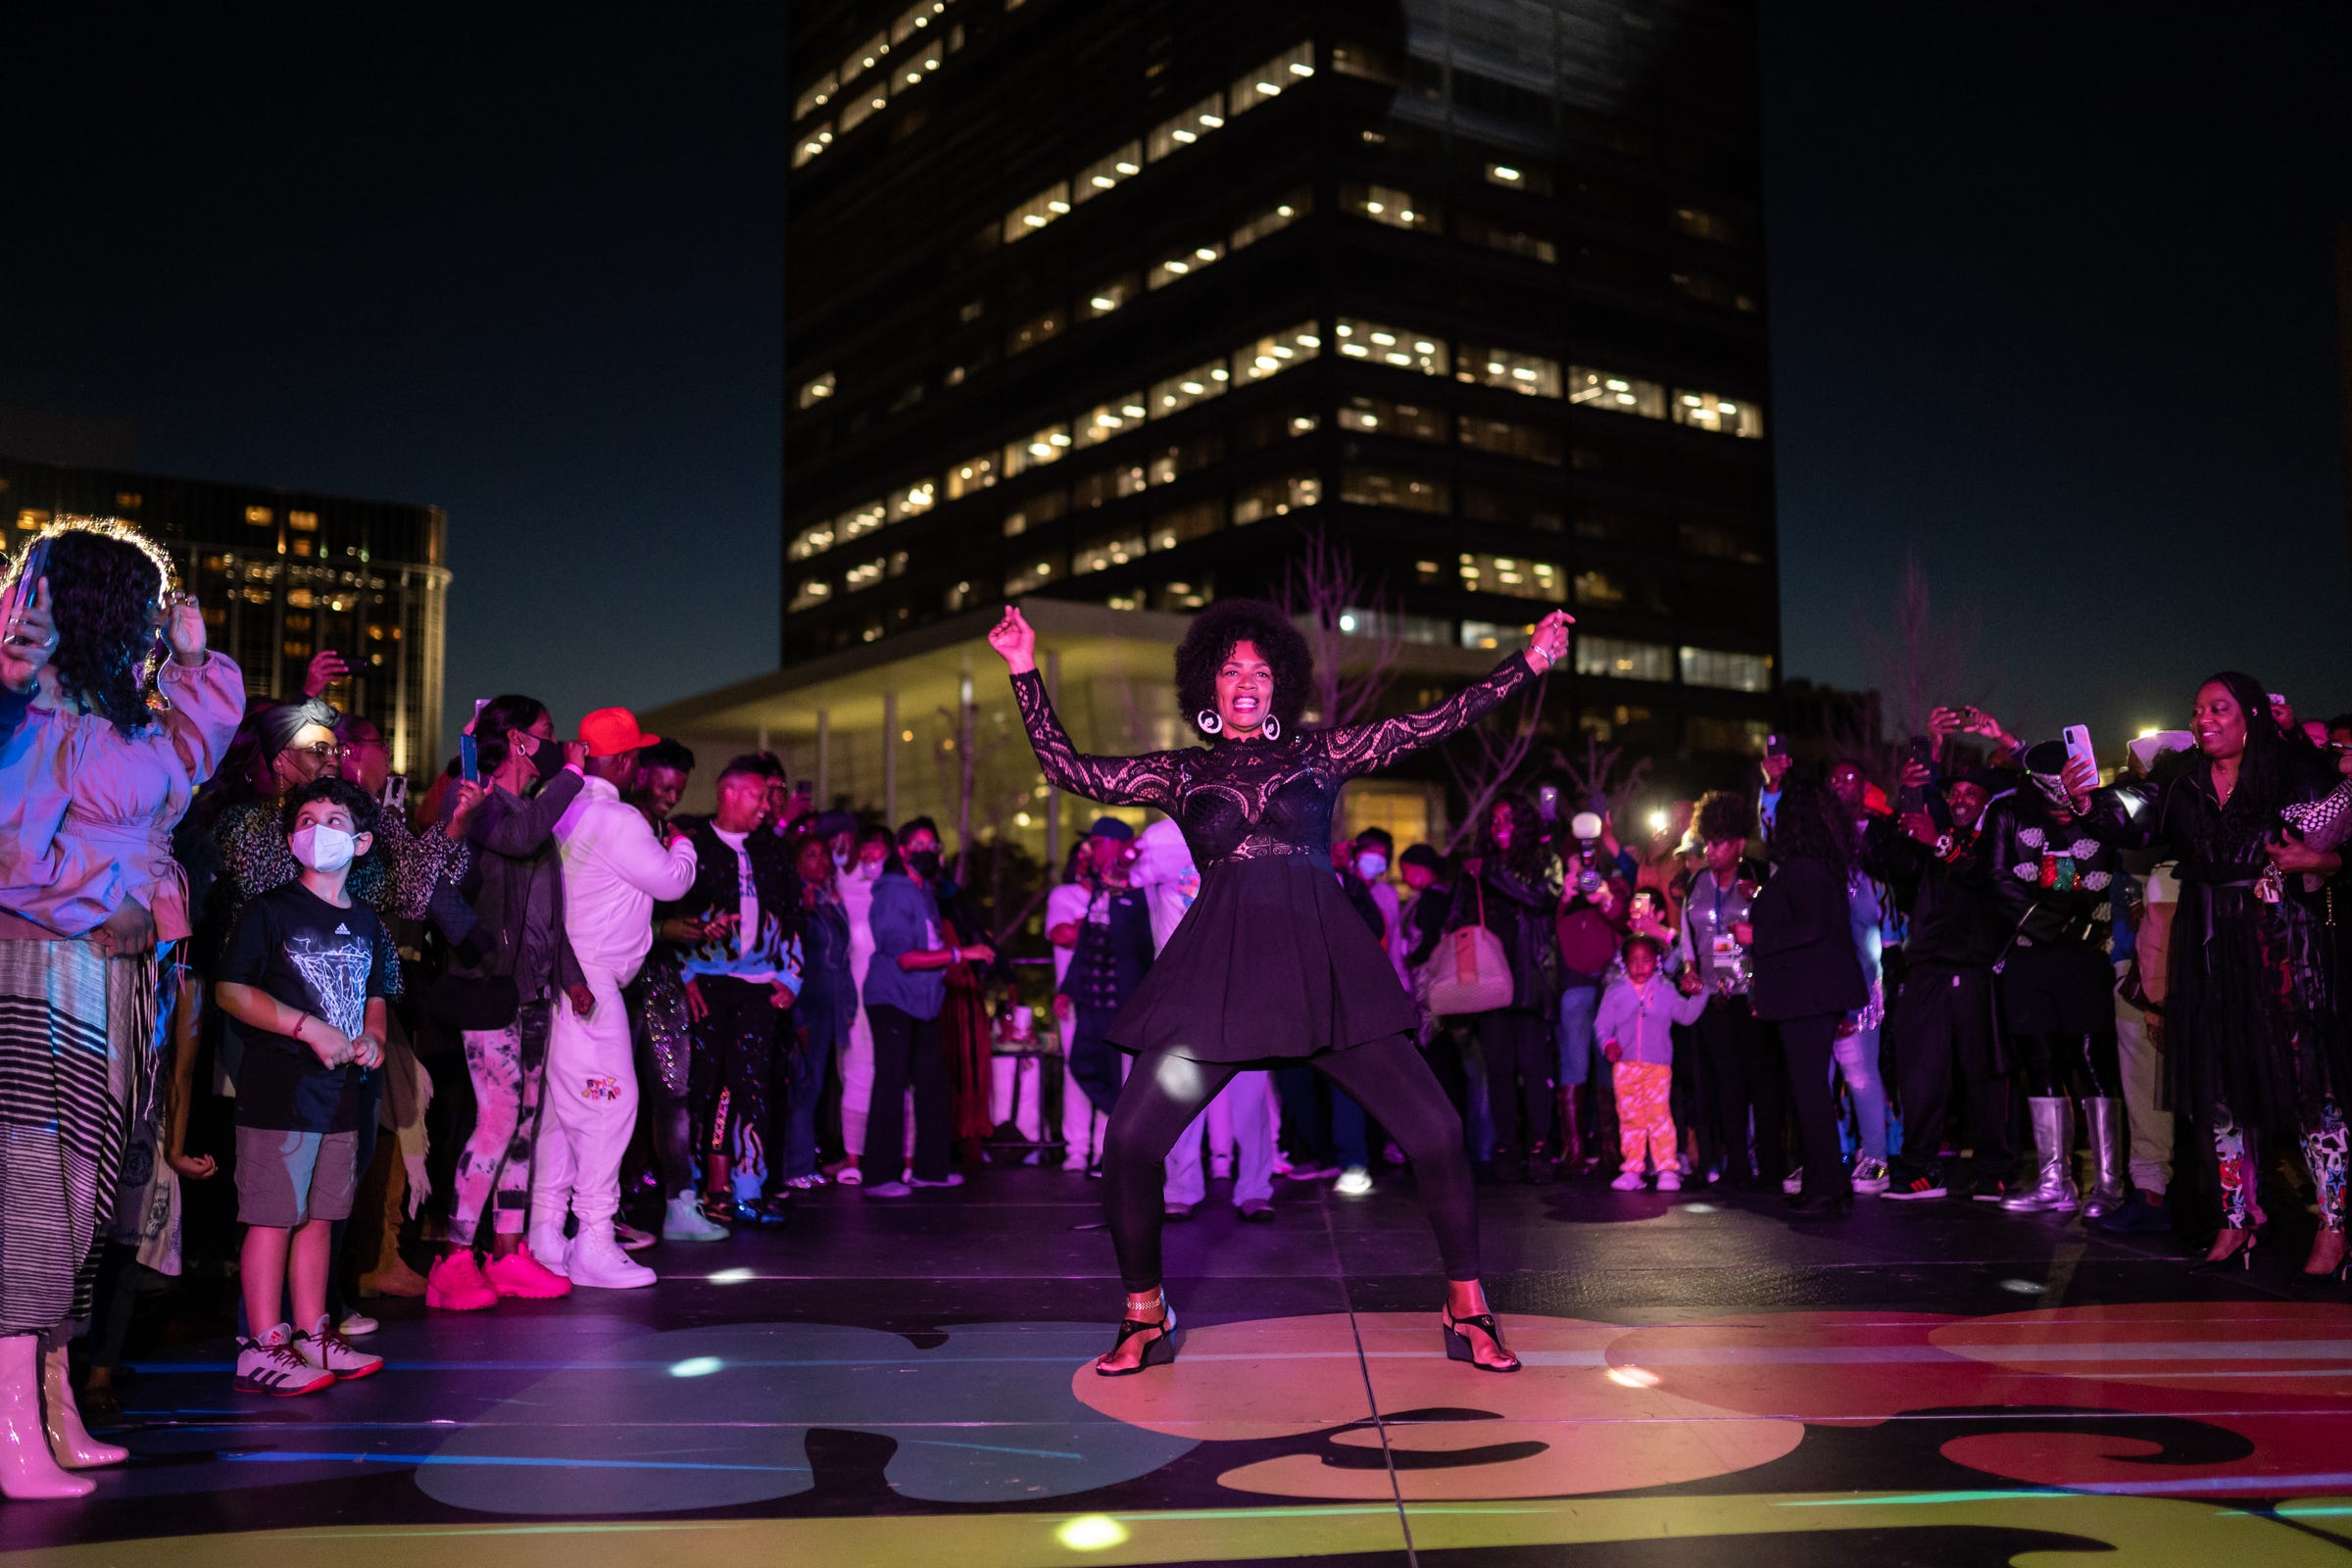 """LaWanda Gray-Anner kicks off the dance line as others wait for their moment to shine while taking part in """"The Scene with Nat Morris and Friends"""" as part of the DLECTRICITY event at Beacon Park in downtown Detroit on September 24, 2021. The event featured former dancers from Detroit's historic daily dance show that aired on WGPR TV, the first African-American owned and operated television station licensed by the FCC in The United States from 1975-1987, taking part in an open dance floor. The Scene looked to attempt Detroit's longest dance line giving each dancer 30 seconds to keep it moving."""